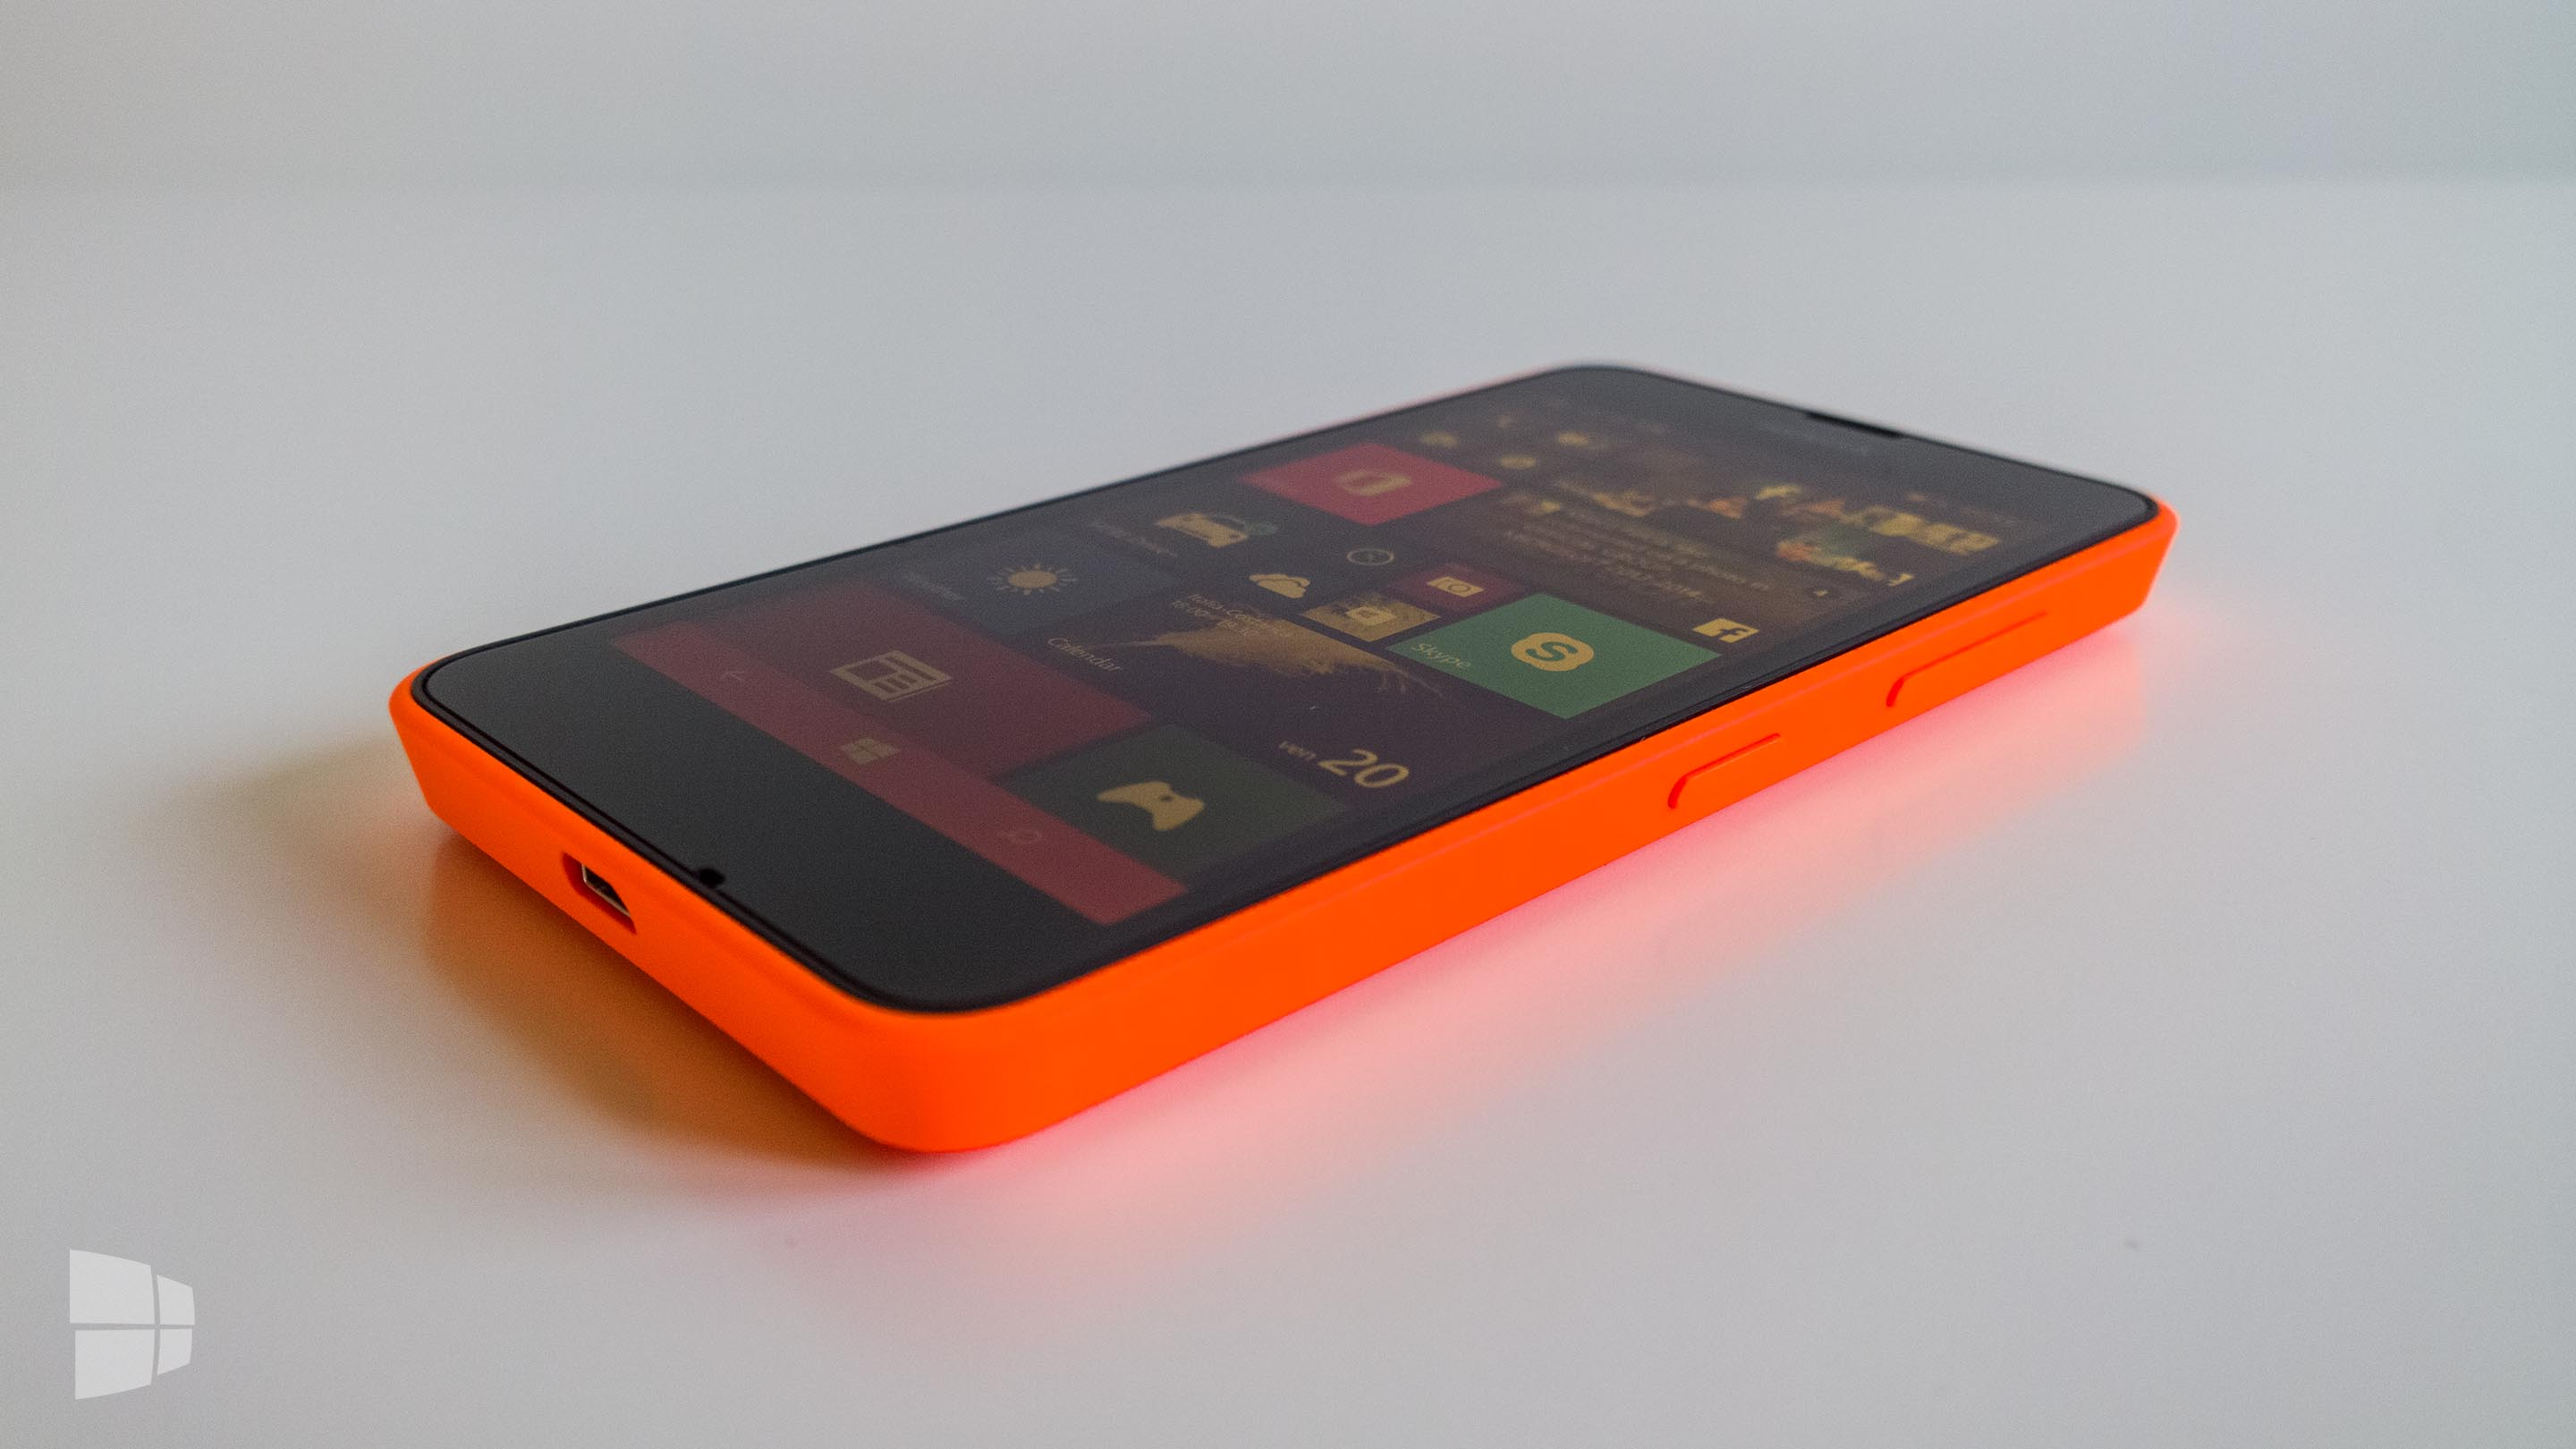 Nokia Lumia 630 Side